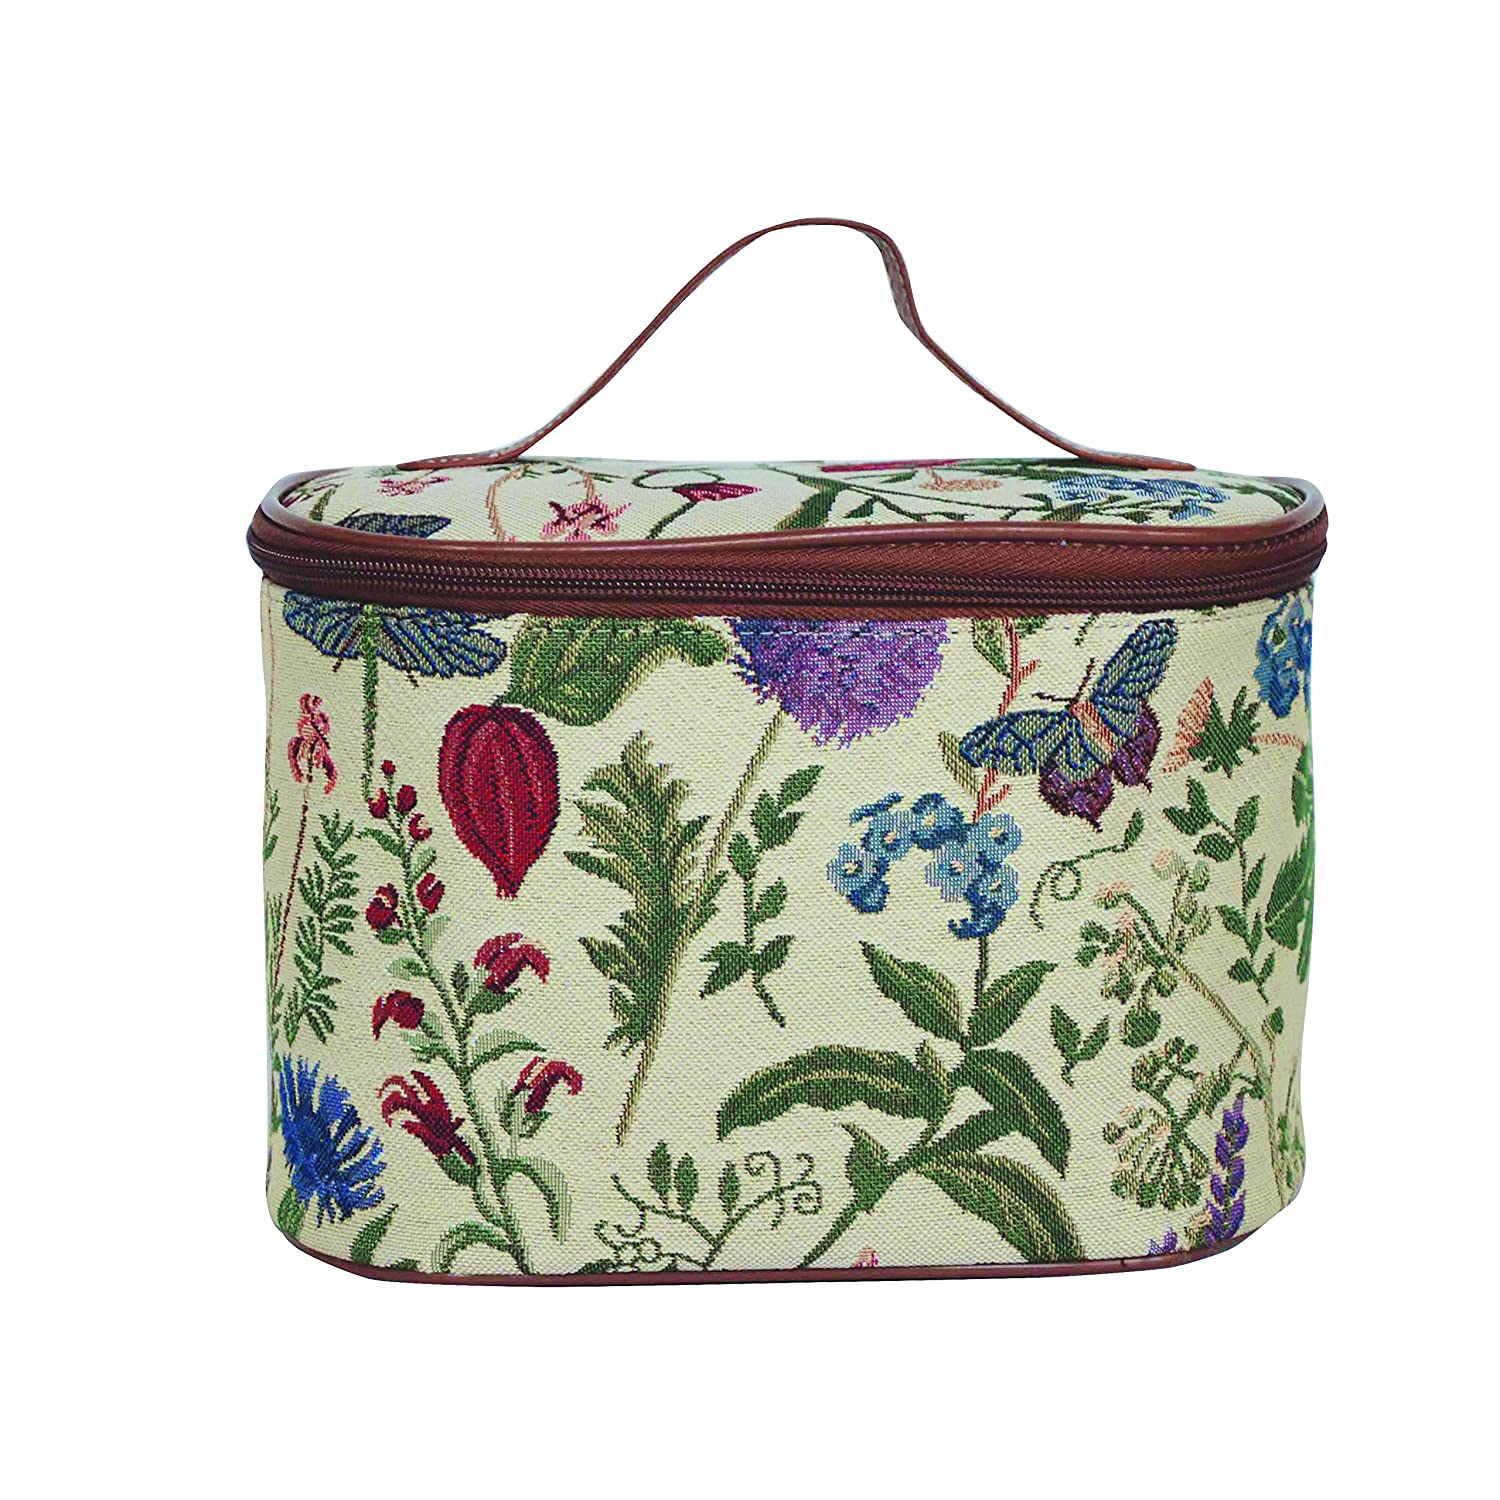 Signare Tapestry Round Large Cosmetic Bag Travel Makeup Organiser Case with Handle Holder in Fashion Boutique Design (TOIL-BOU) TC-01